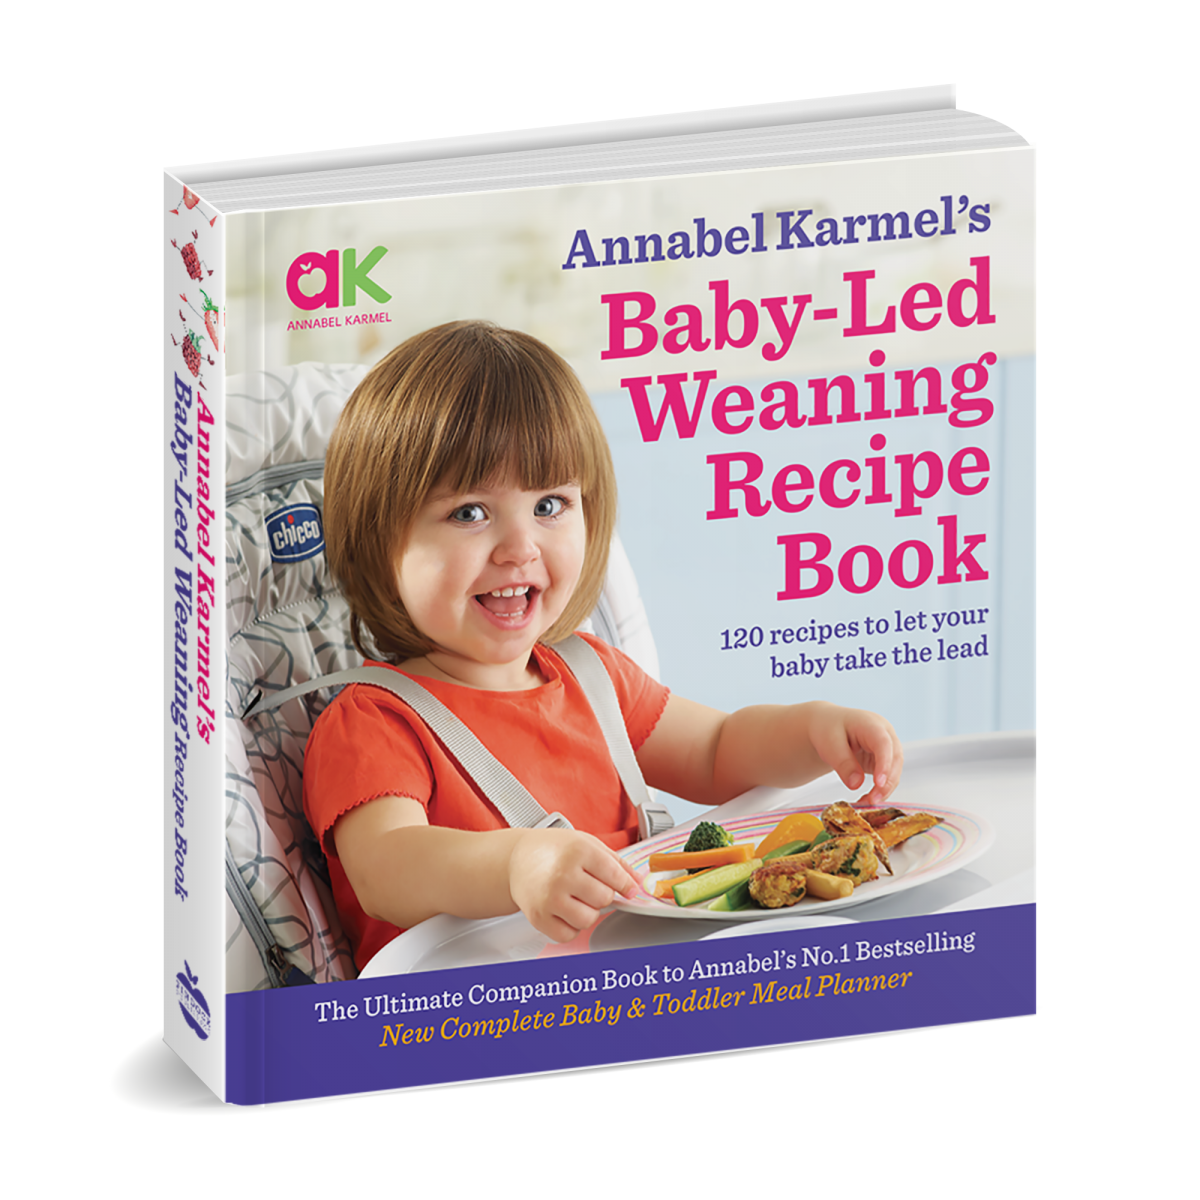 Annabel Karmel's Baby-Led Weaning Recipe Book Review and Giveaway!